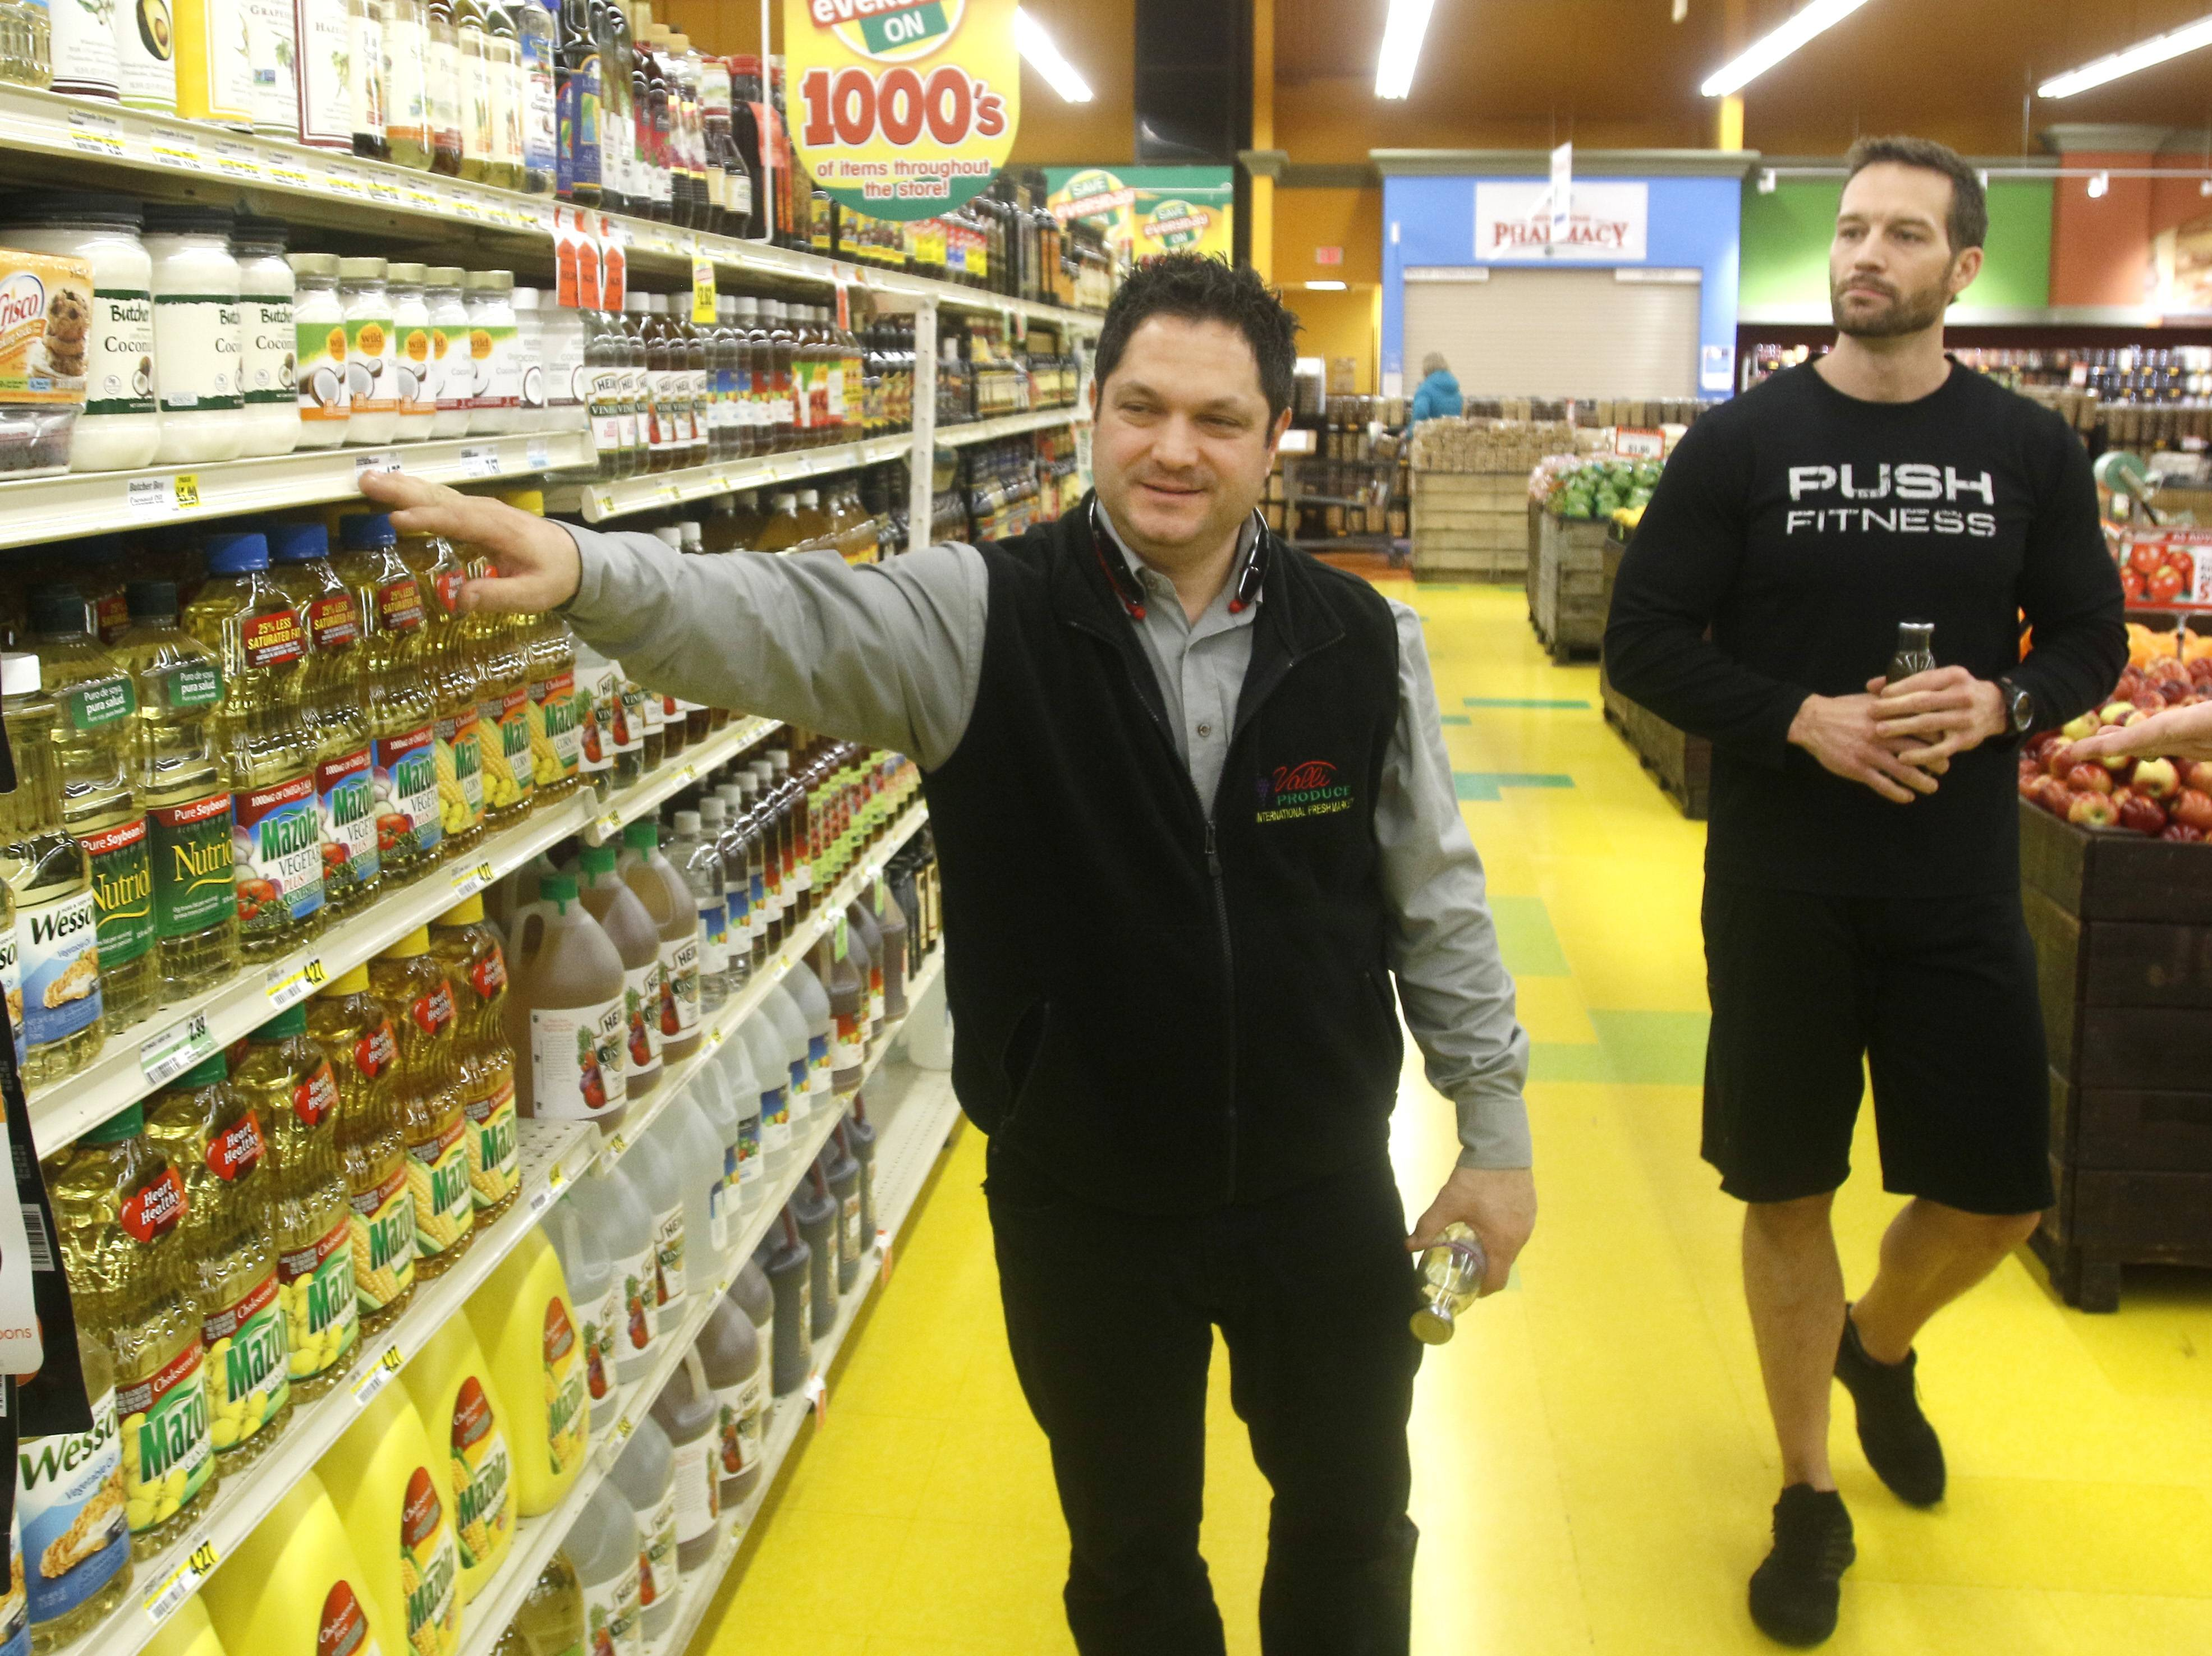 Longtime Valli Produce manager Frank Greco and Push Fitness owner Josh Steckler guided the Fittest Loser contestants through all the grocery store's departments, starting with fresh vegetables and fruits.